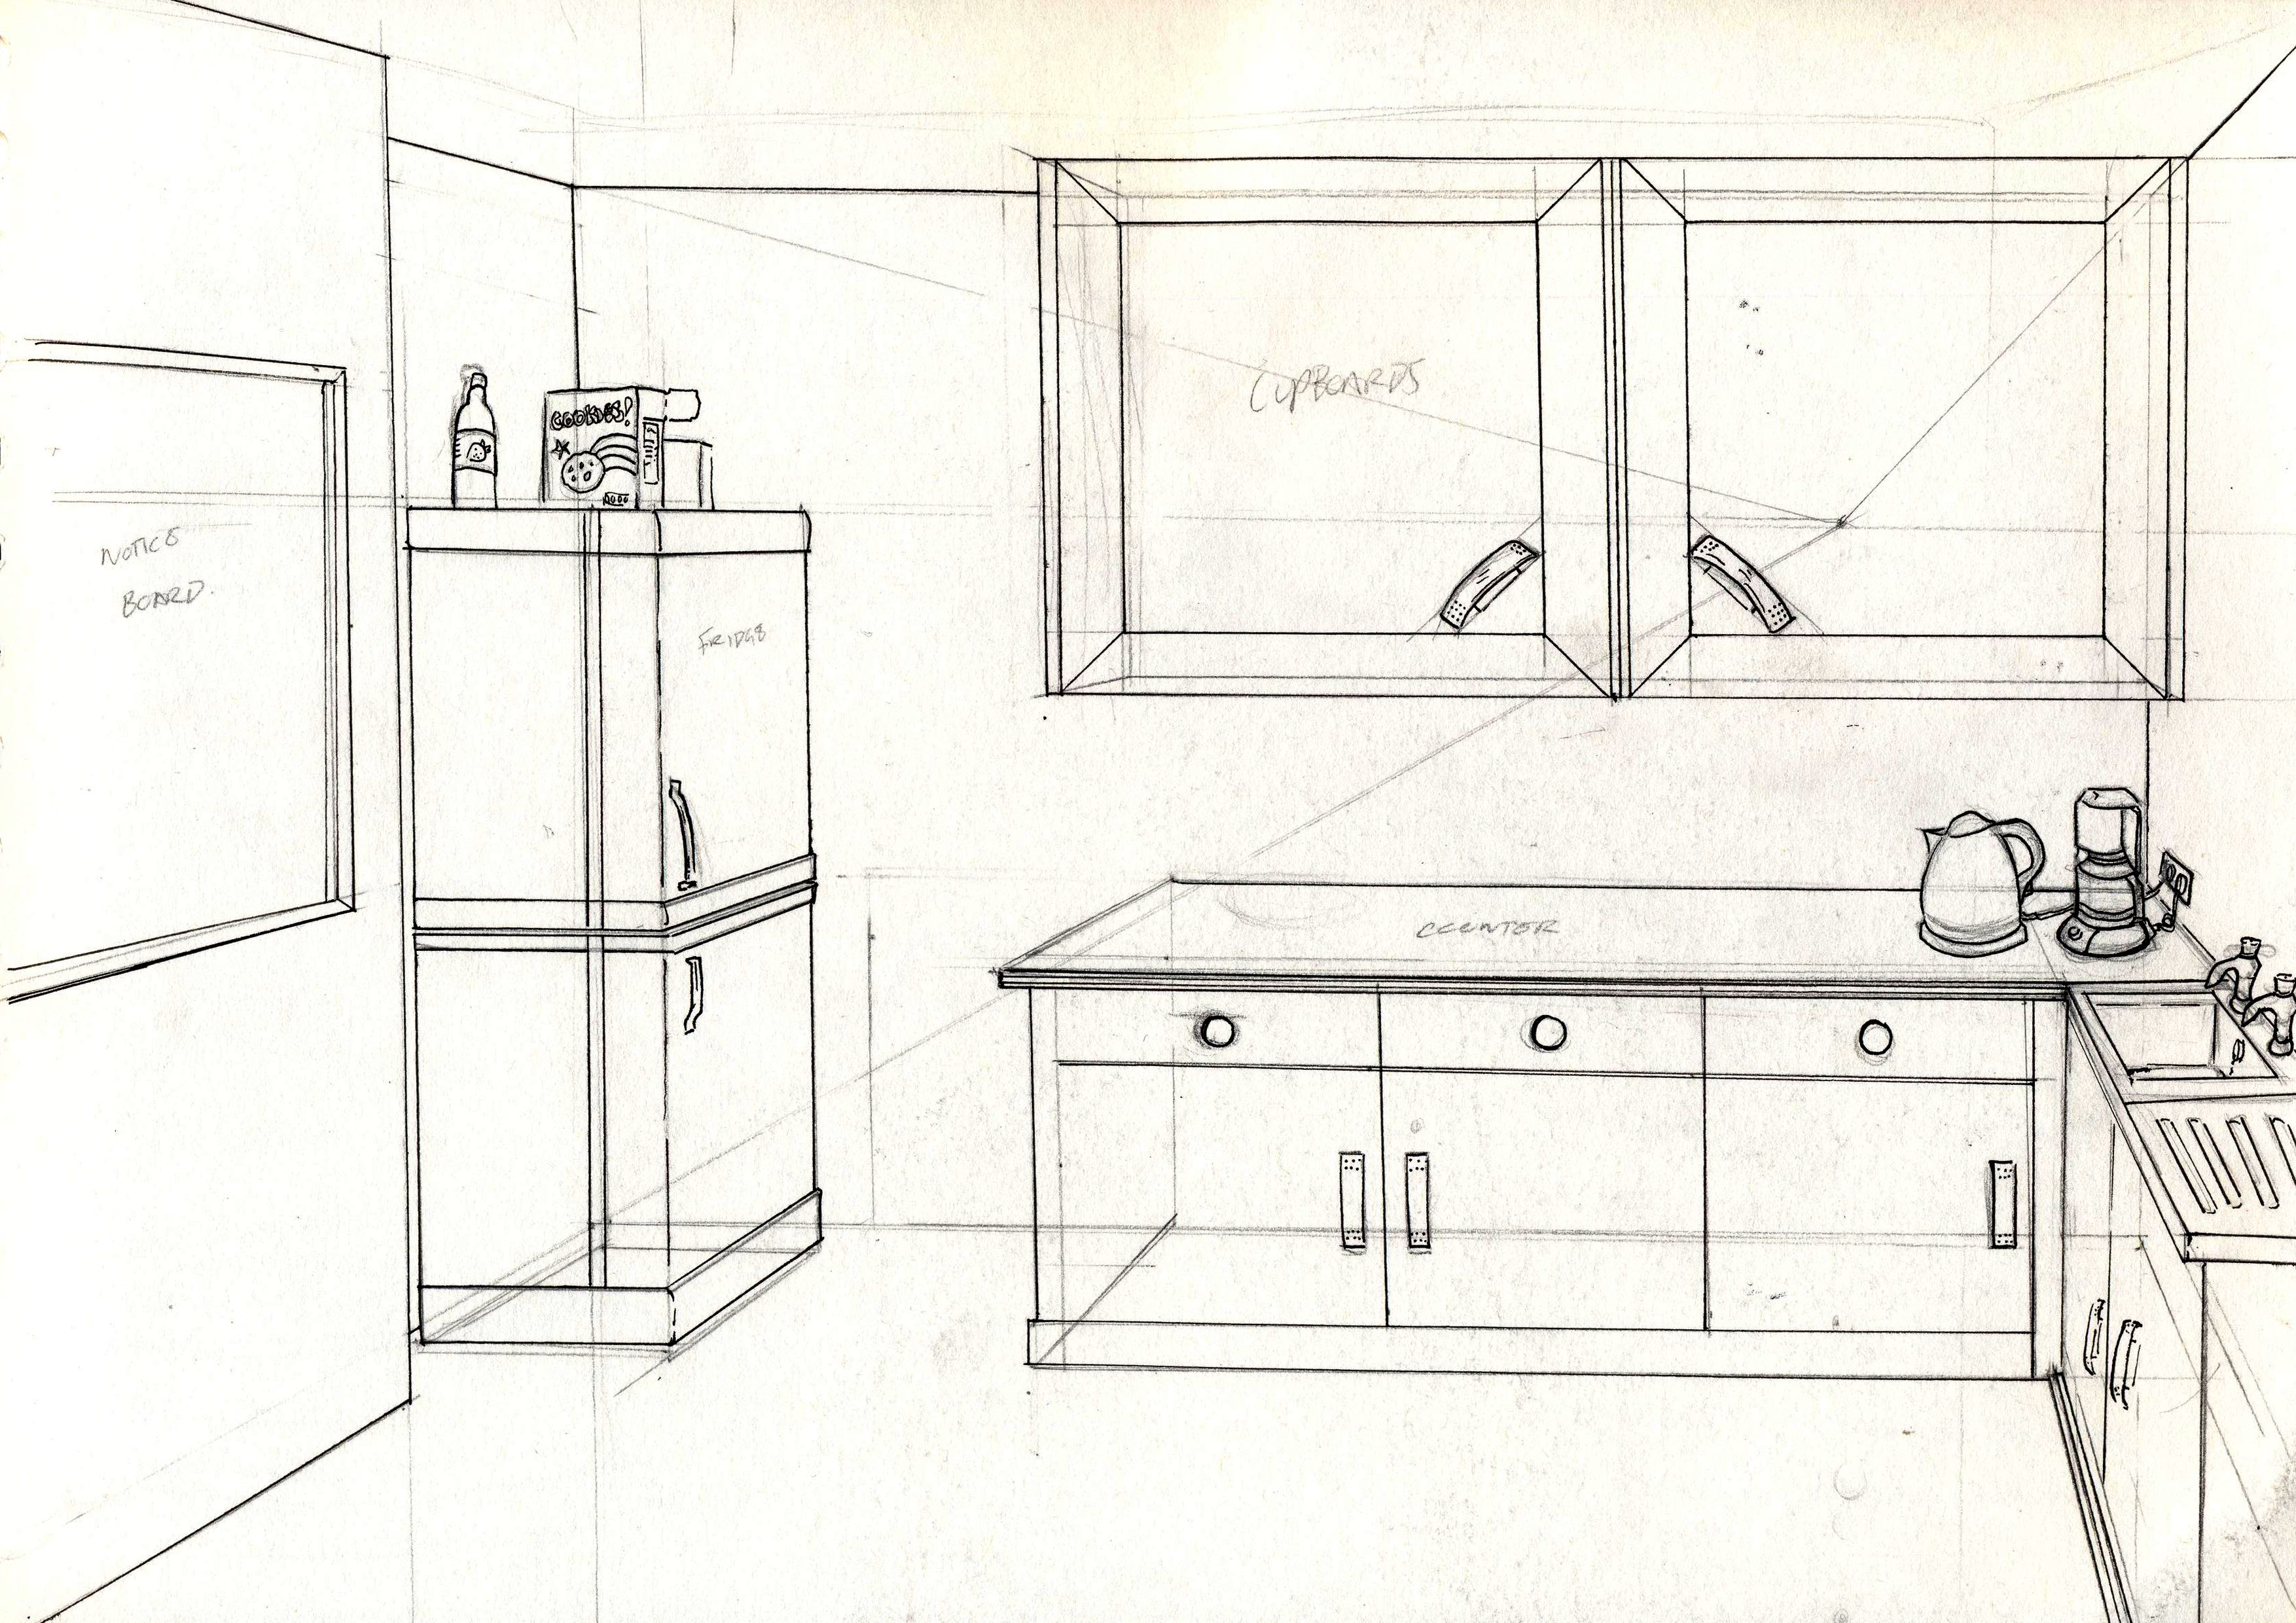 Break Room Aesthetic And Props Perspective Drawing Perspective Room Easy Drawings